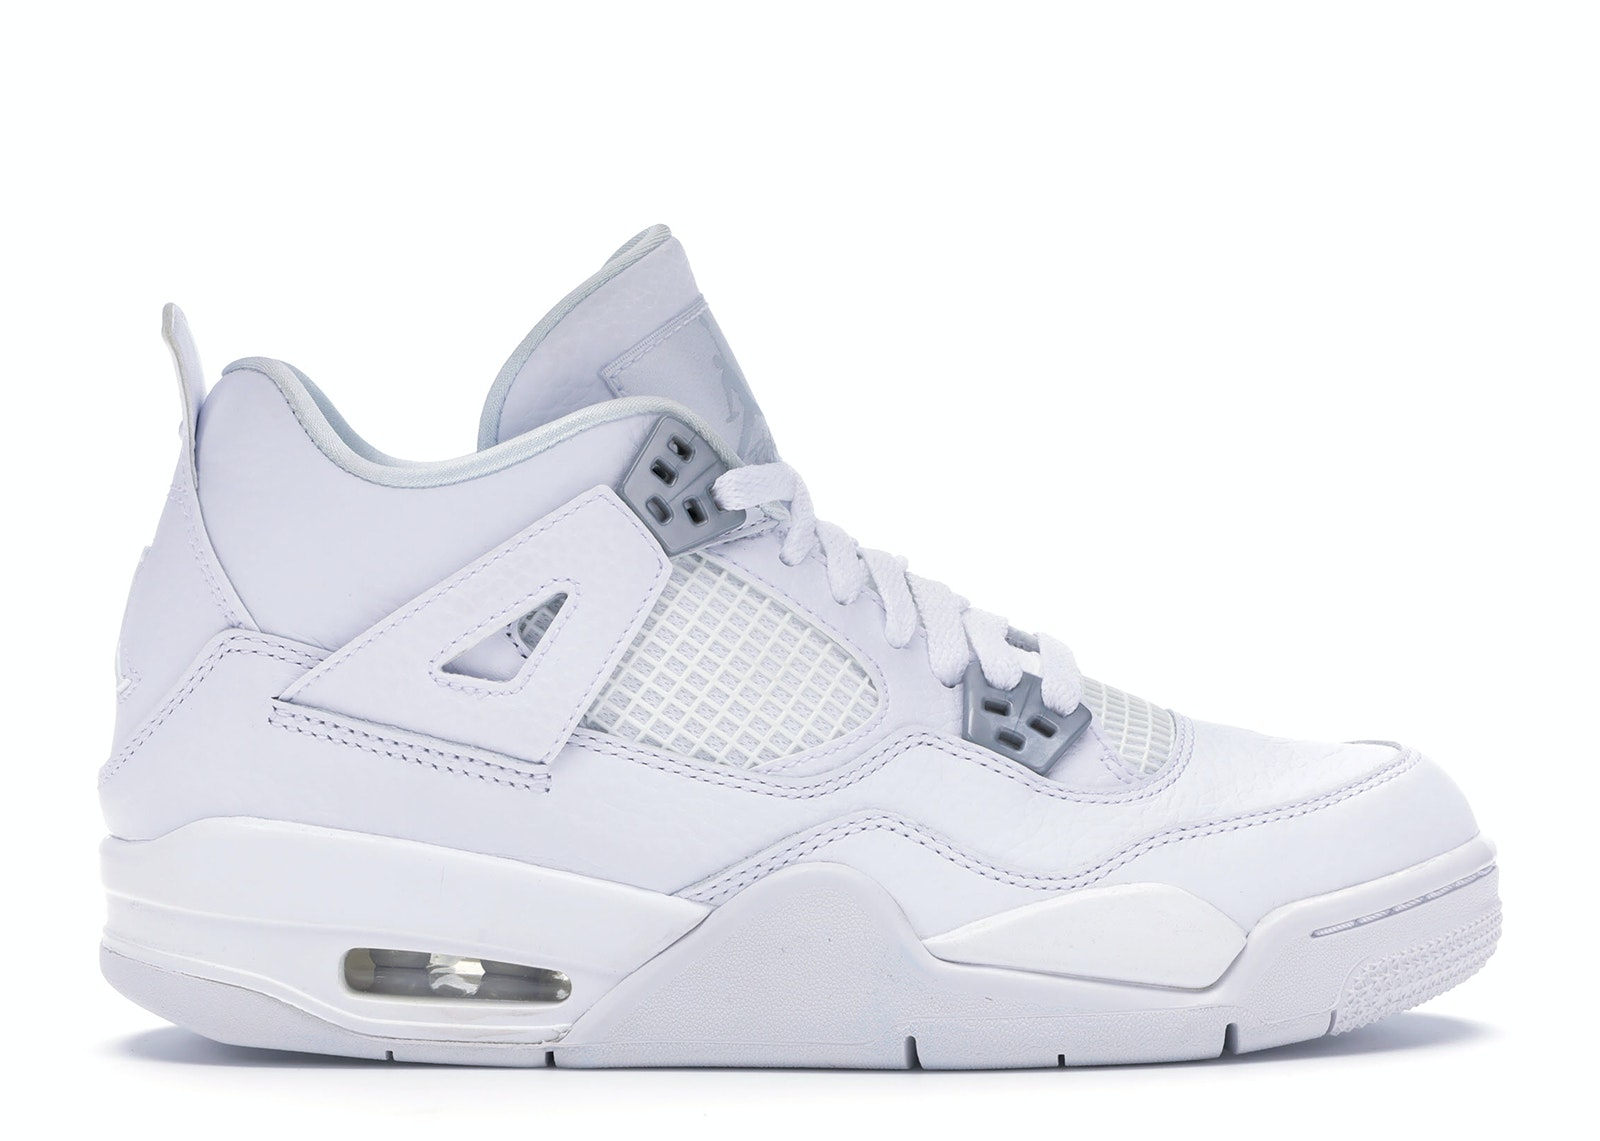 Jordan 4 Retro Pure Money 2017 (GS)